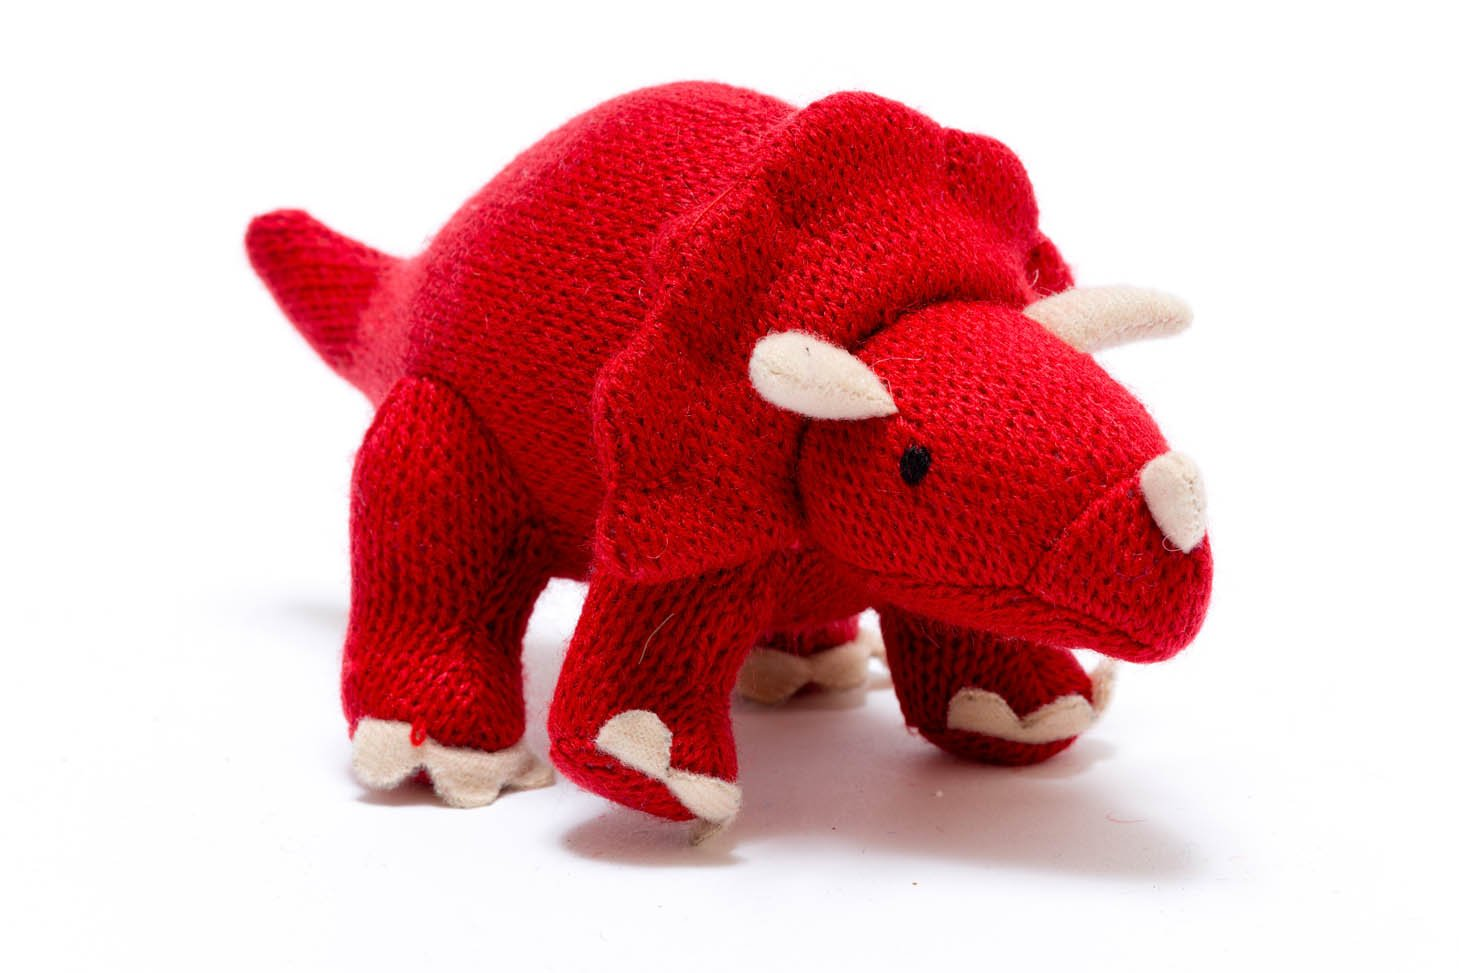 red knitted triceratops rattle baby dinosaur toy